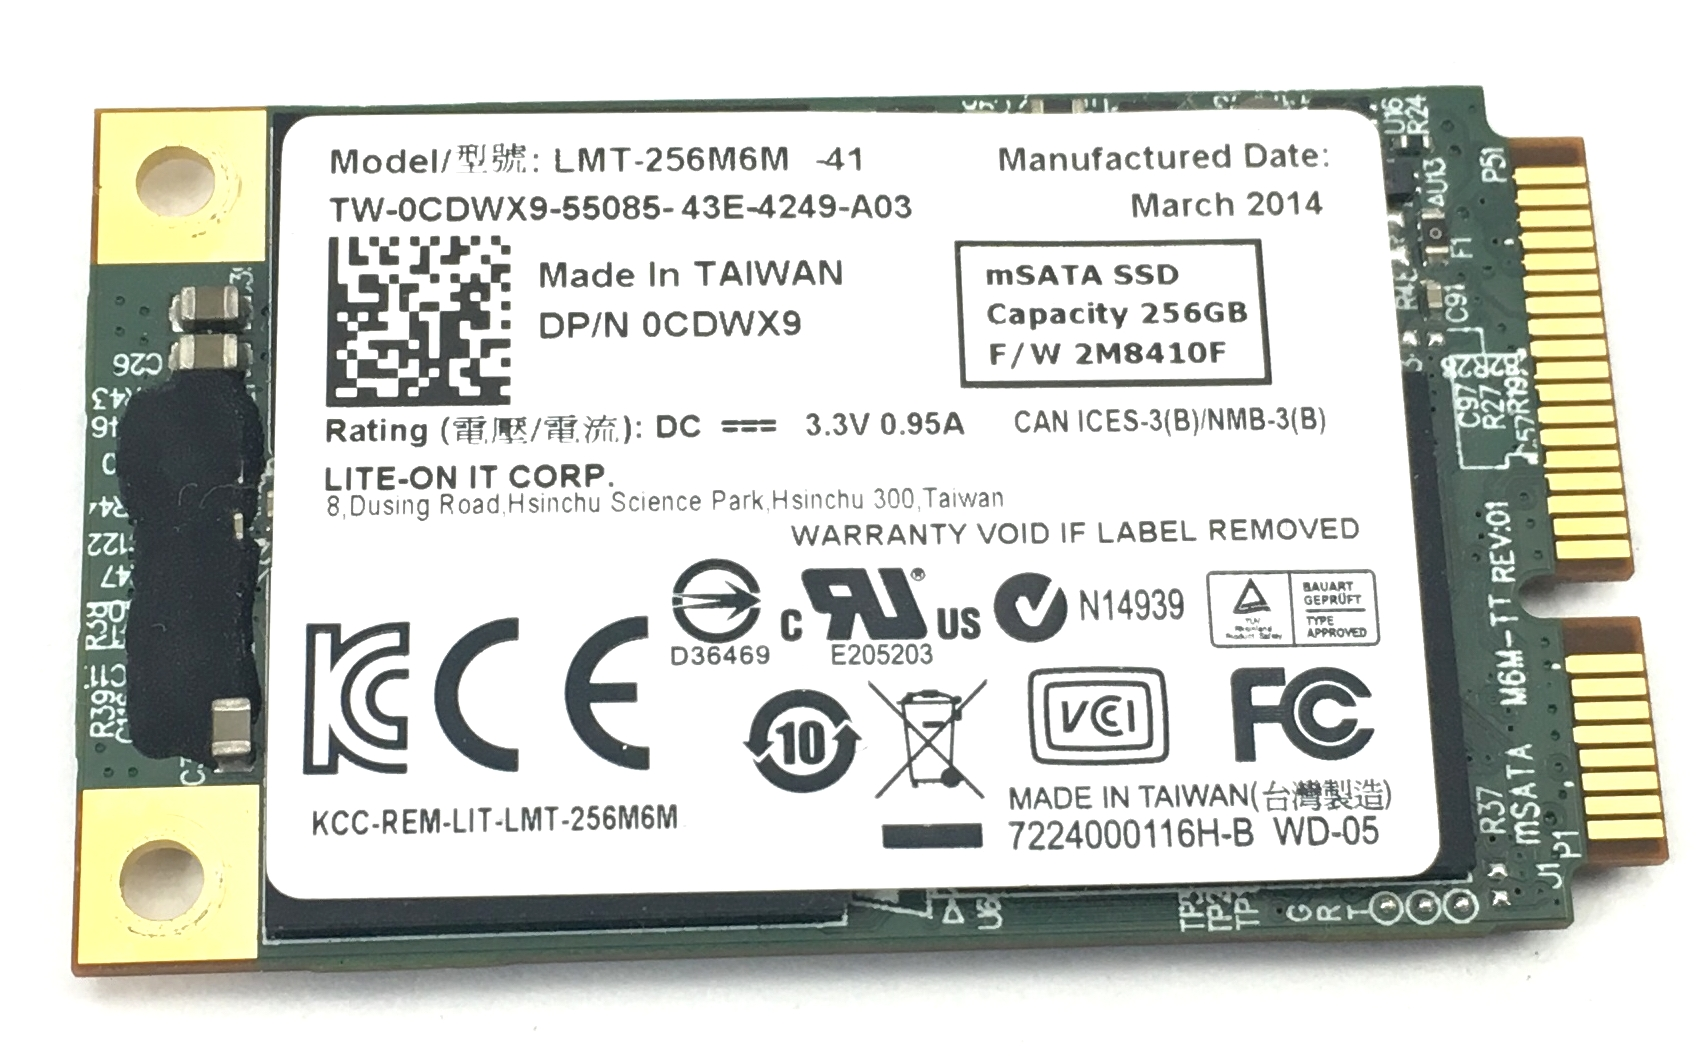 Dell Lite-On Lmt-256M6M 256GB MSATA SSD Solid State Drive (CDWX9)